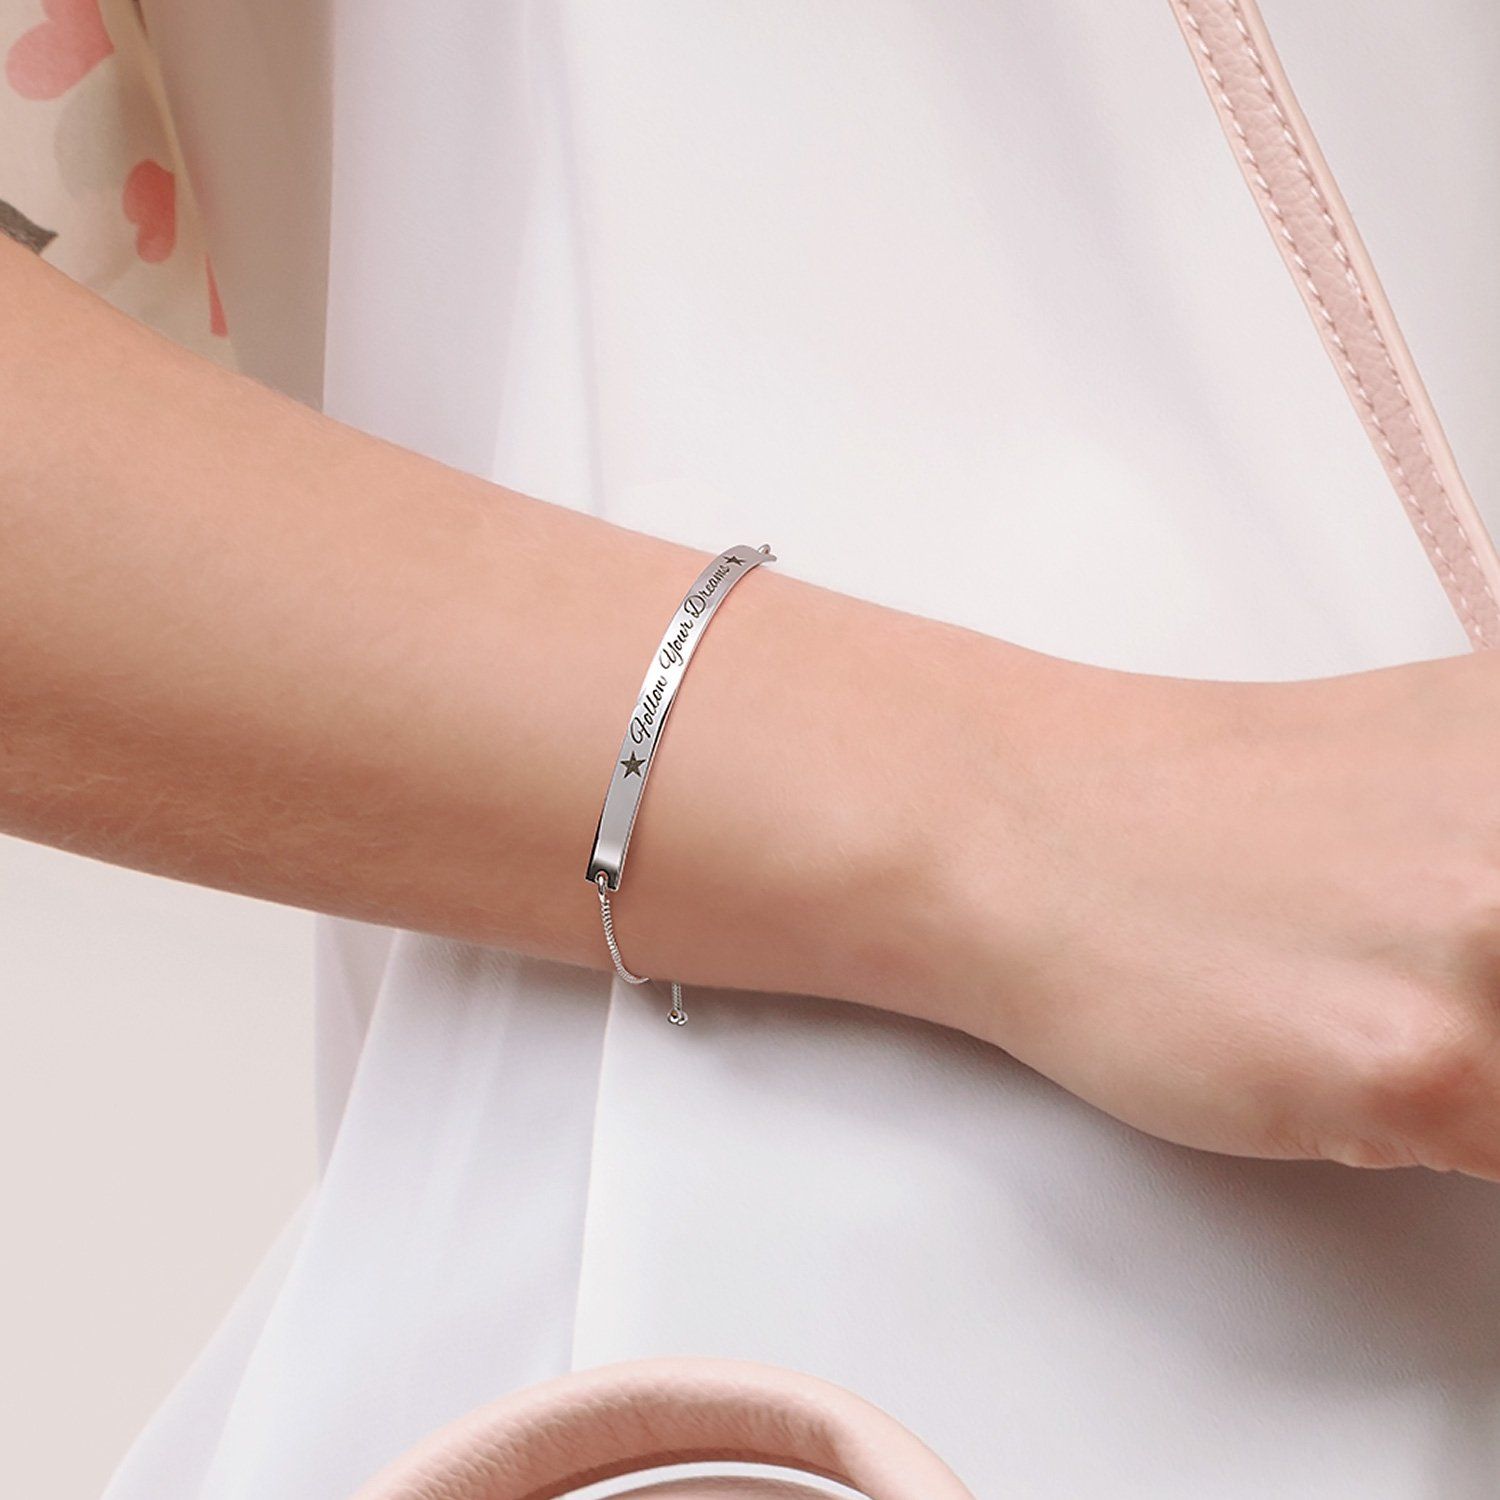 Follow Your Dreams Inspirational Message Bolo Bar Bracelet Adjustable 925 Silver 11 Inch by Bling Jewelry (Image #3)